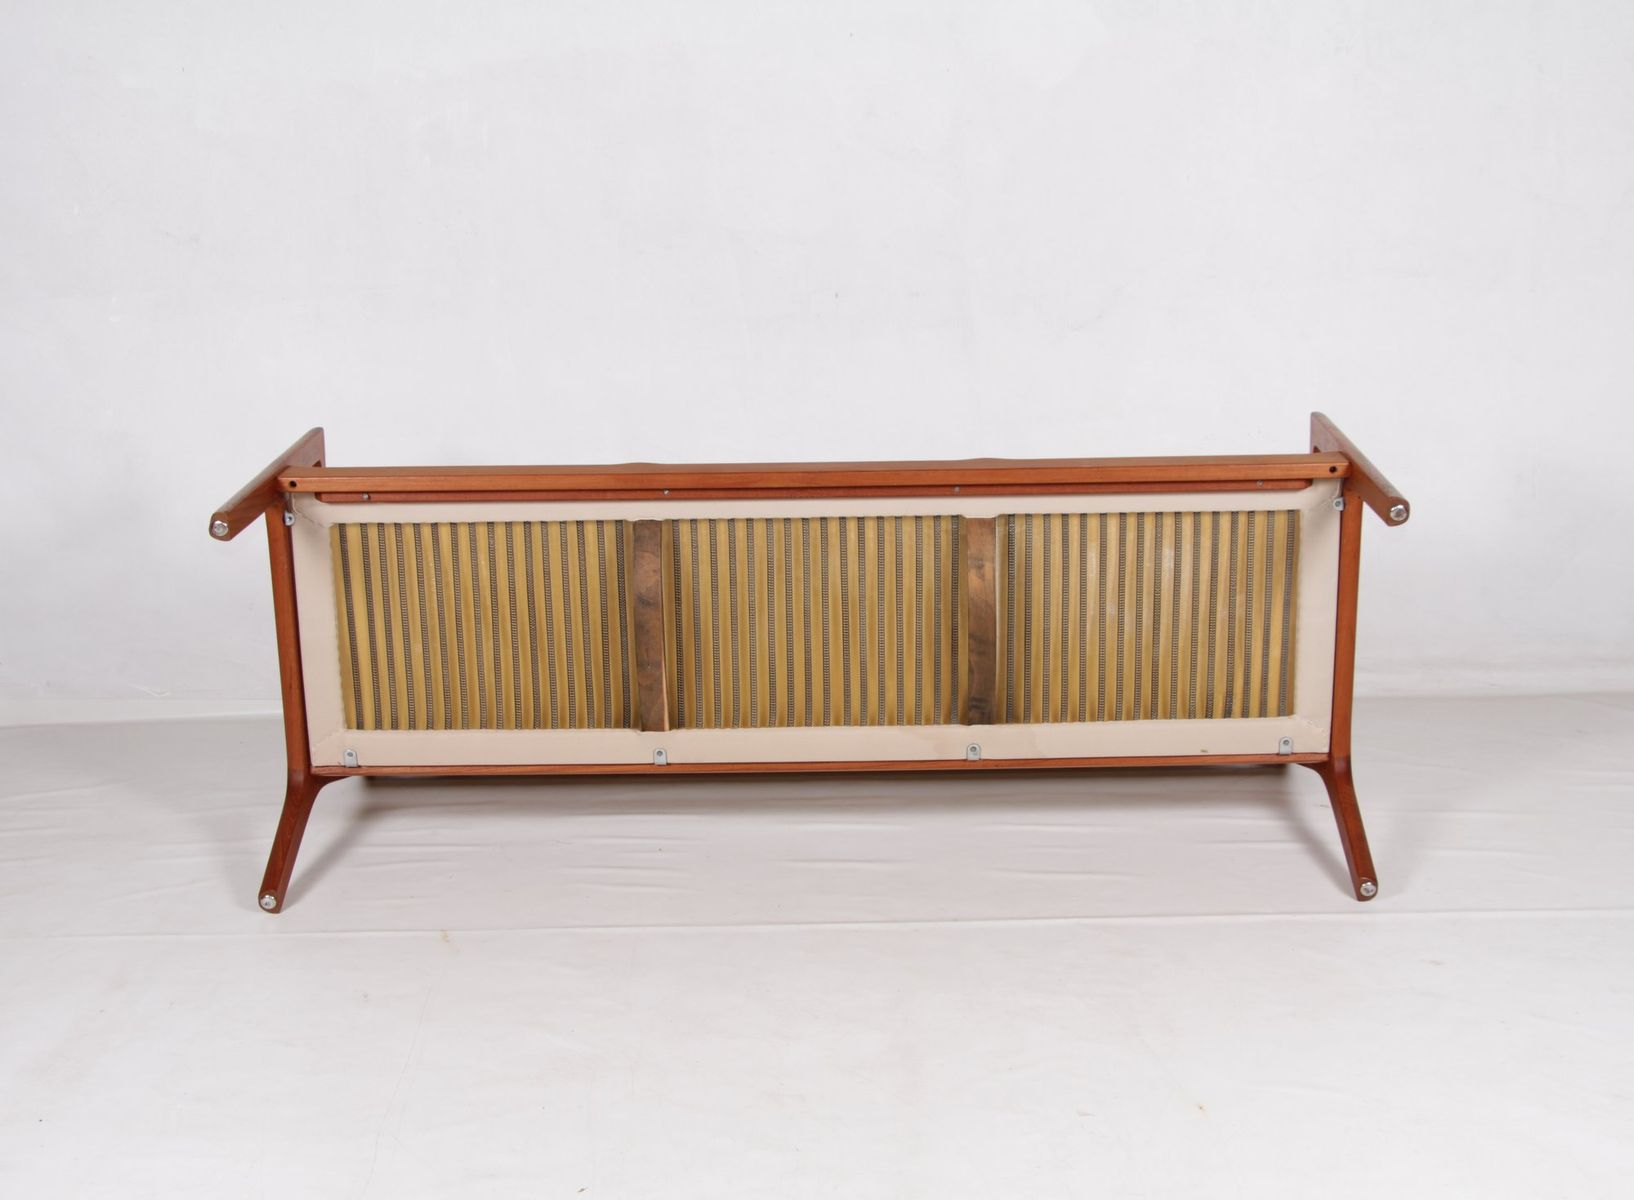 Teak Sofa by Ole Wanscher for France & S¸n 1960s for sale at Pamono